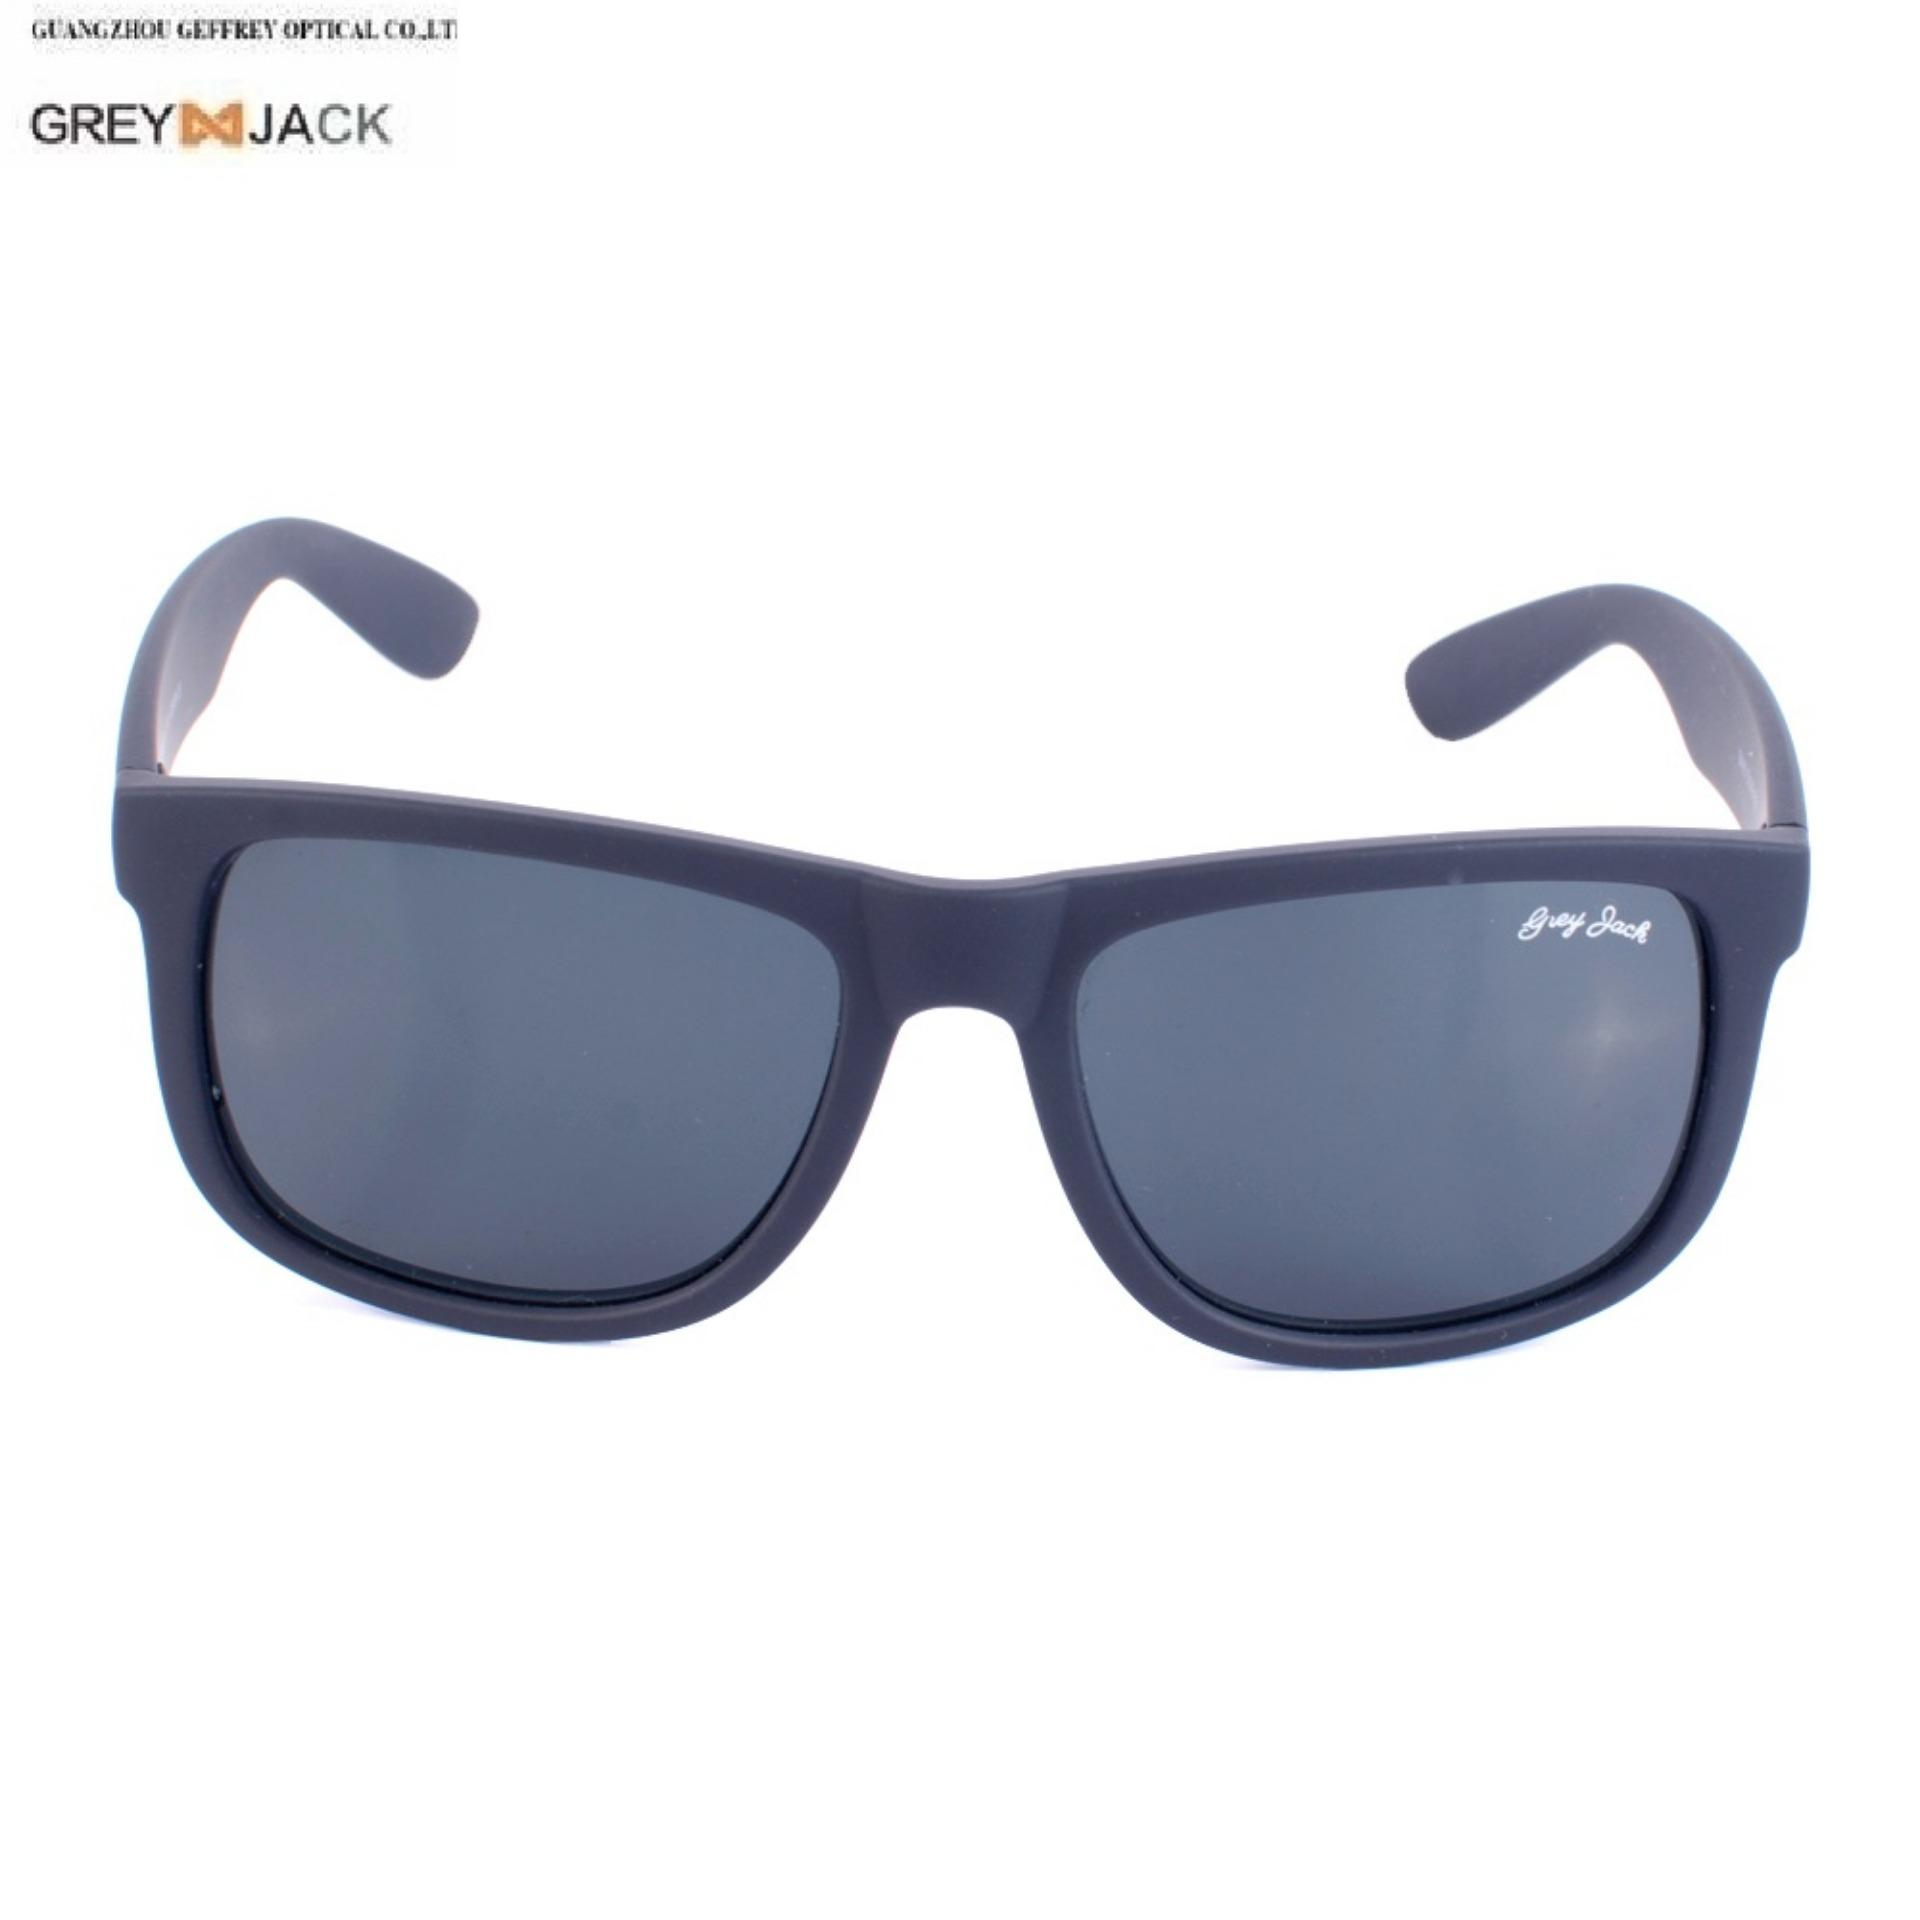 7967708d7a99 GREY JACK Rect.400% UV Protected Black Wayfarer Sunglasses